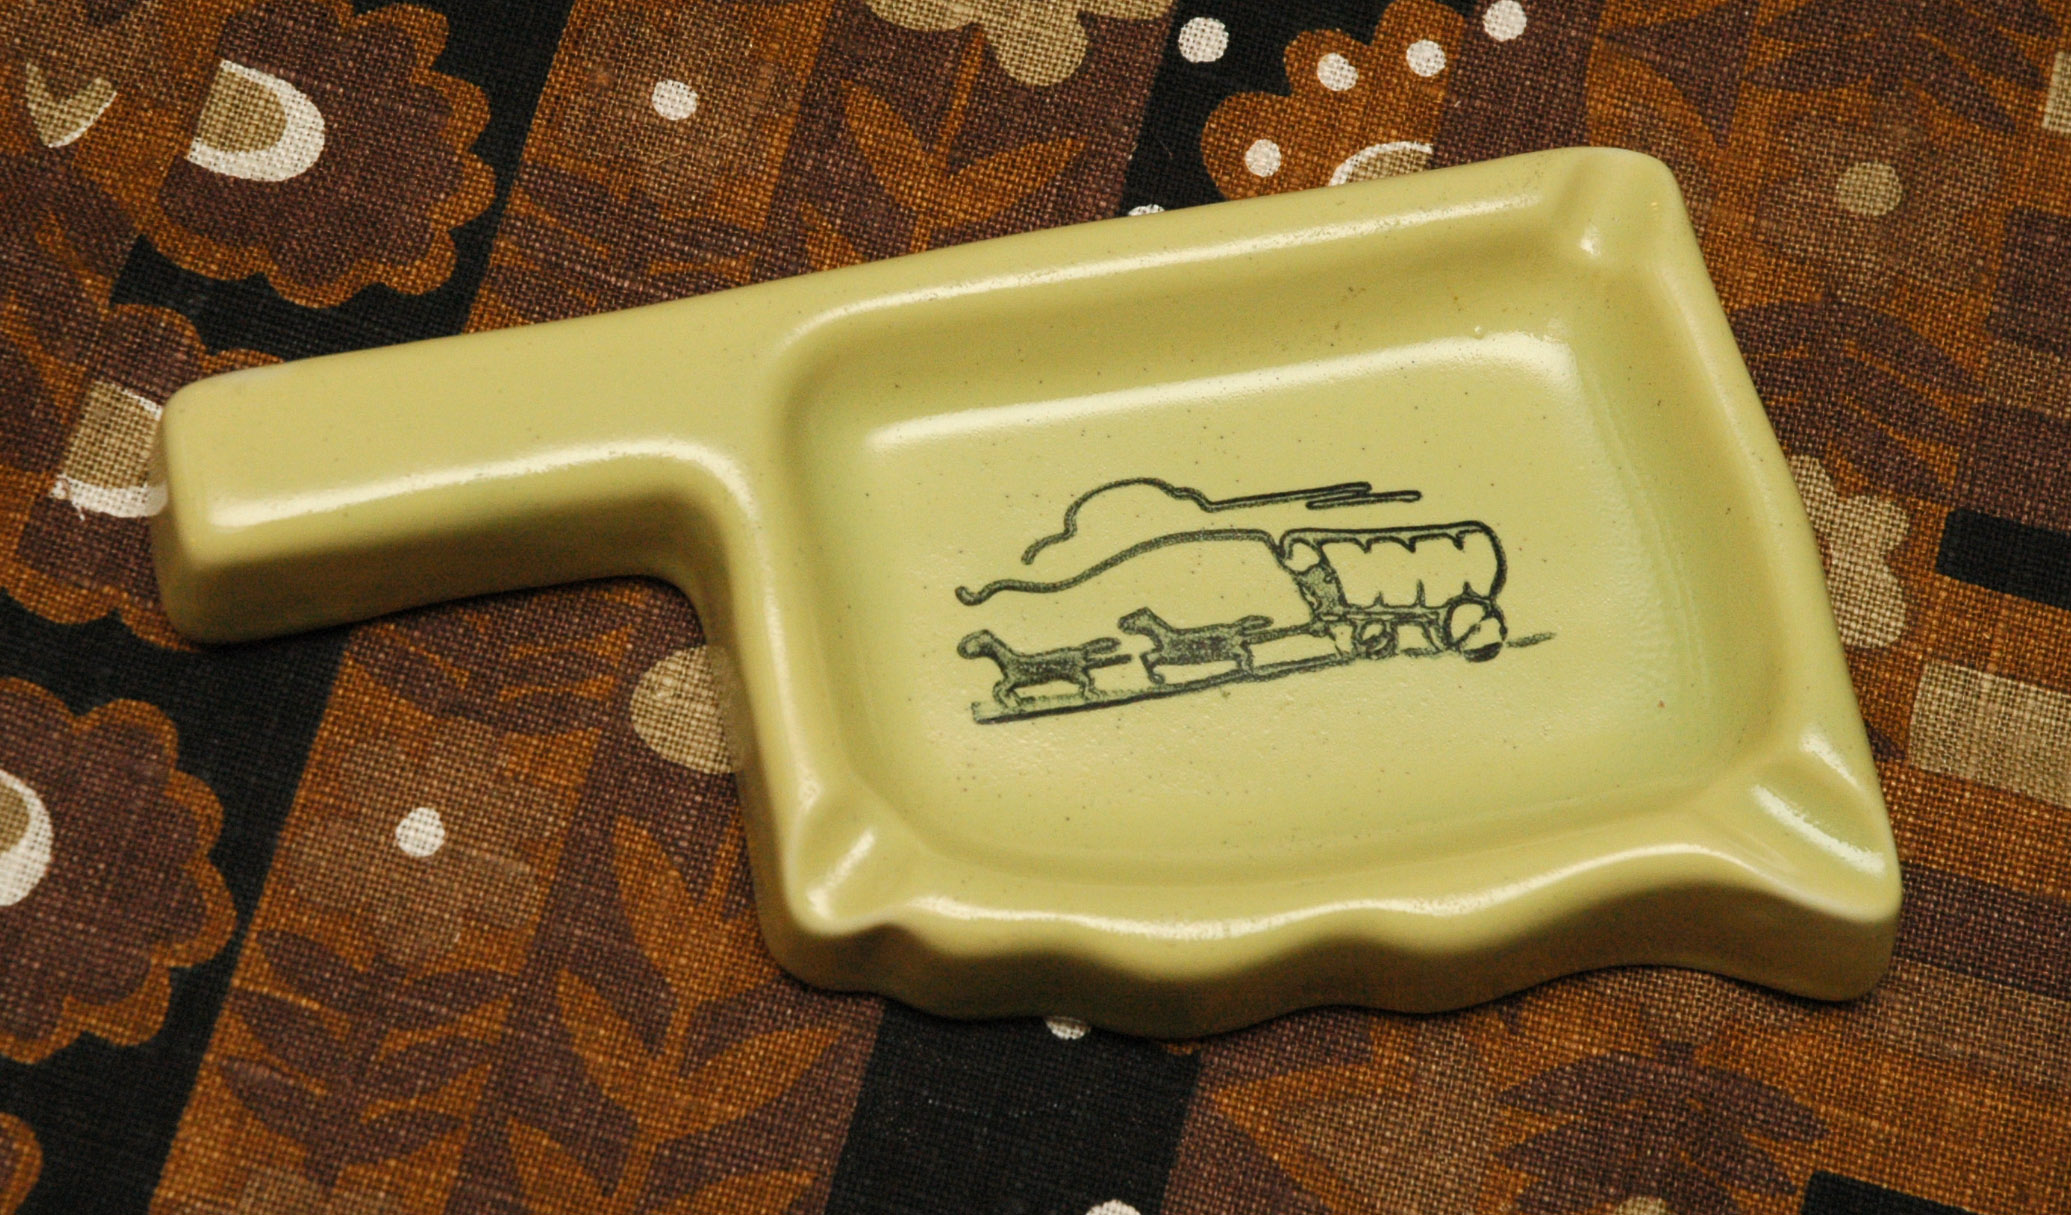 Tamac Oklahoma ashtray